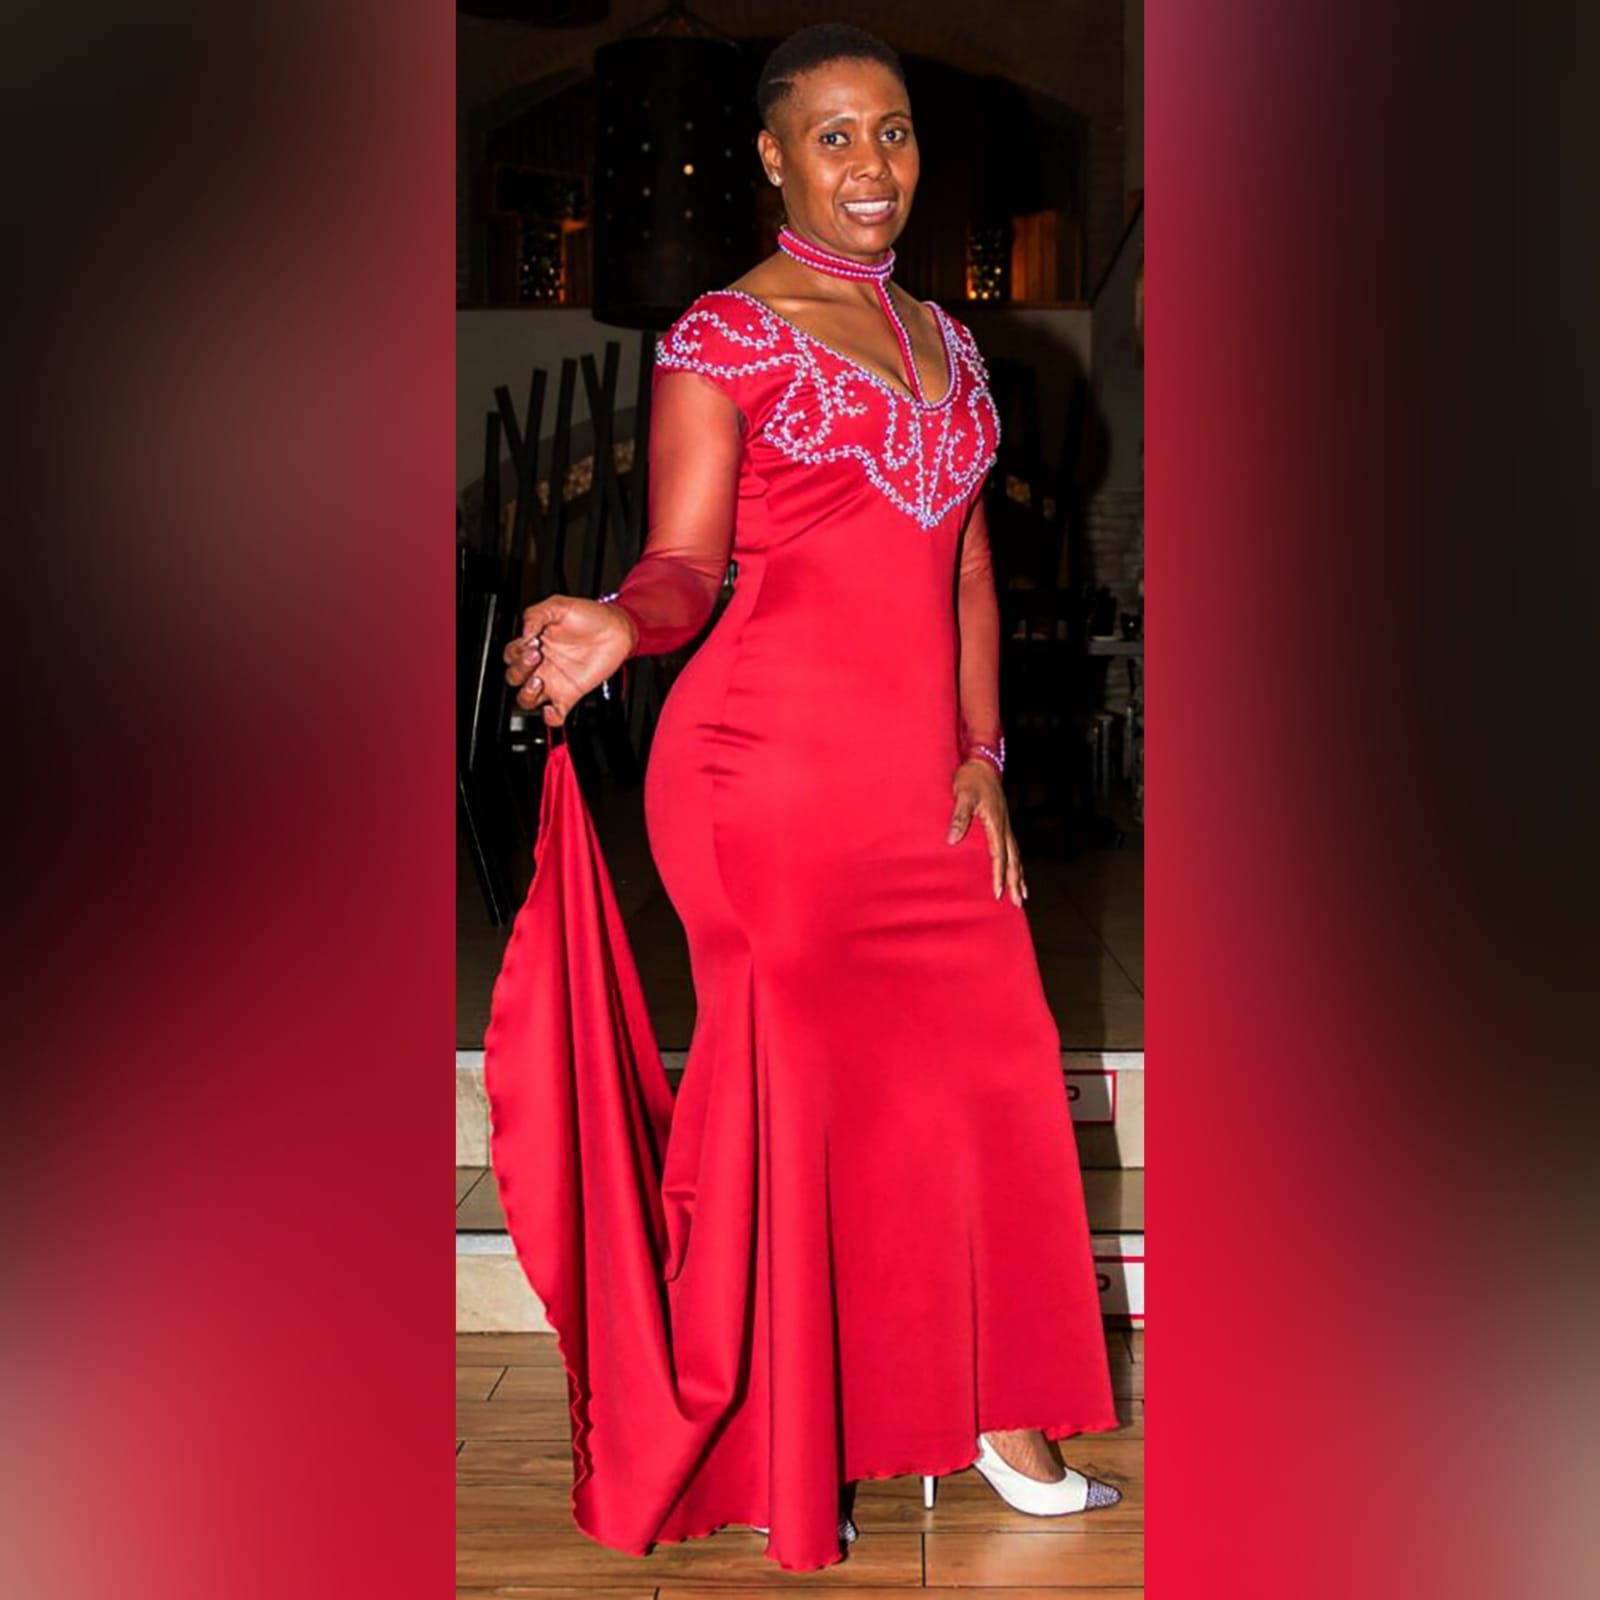 Beaded red long evening party dress 1 red long evening party dress, fitted till hip then it flares out a bit, with a train, with long sheer sleeves. Dress with a v neckline detailed in silver with an optional choker.